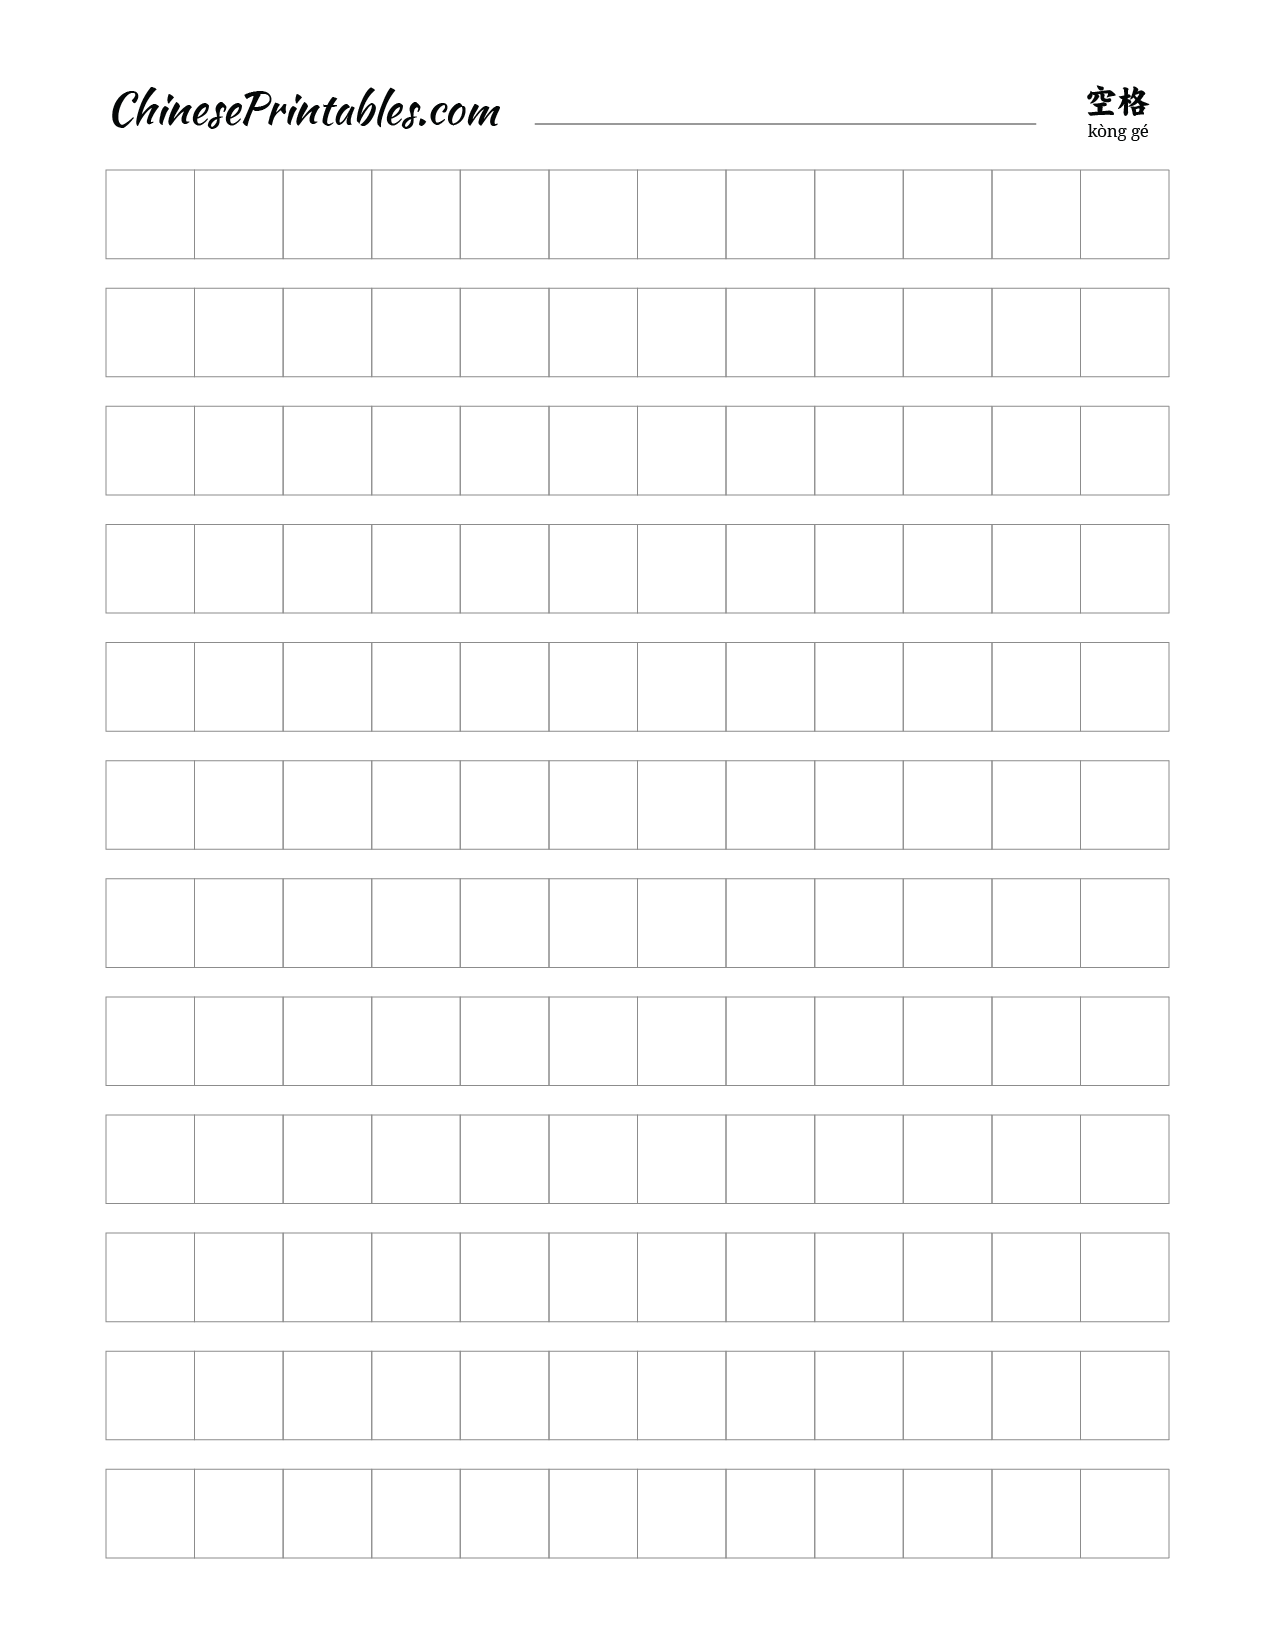 Worksheets Chinese Writing Worksheets chinese printables free printable resources to help you write empty grid